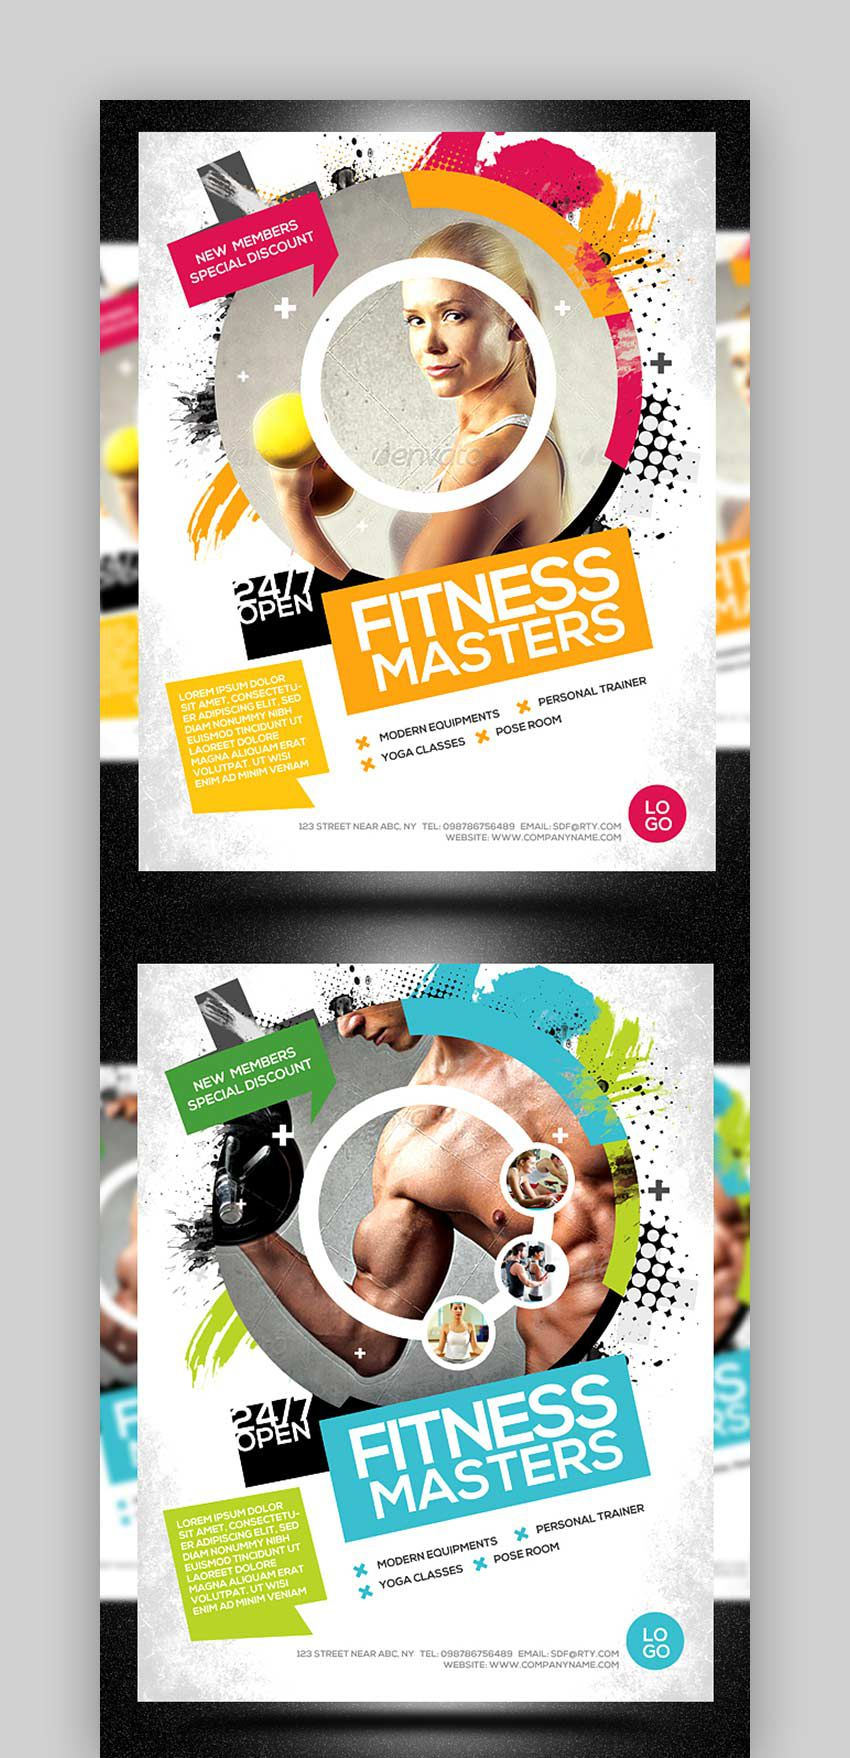 004 Stunning Adobe Photoshop Psd Poster Template Free Download High Resolution Full